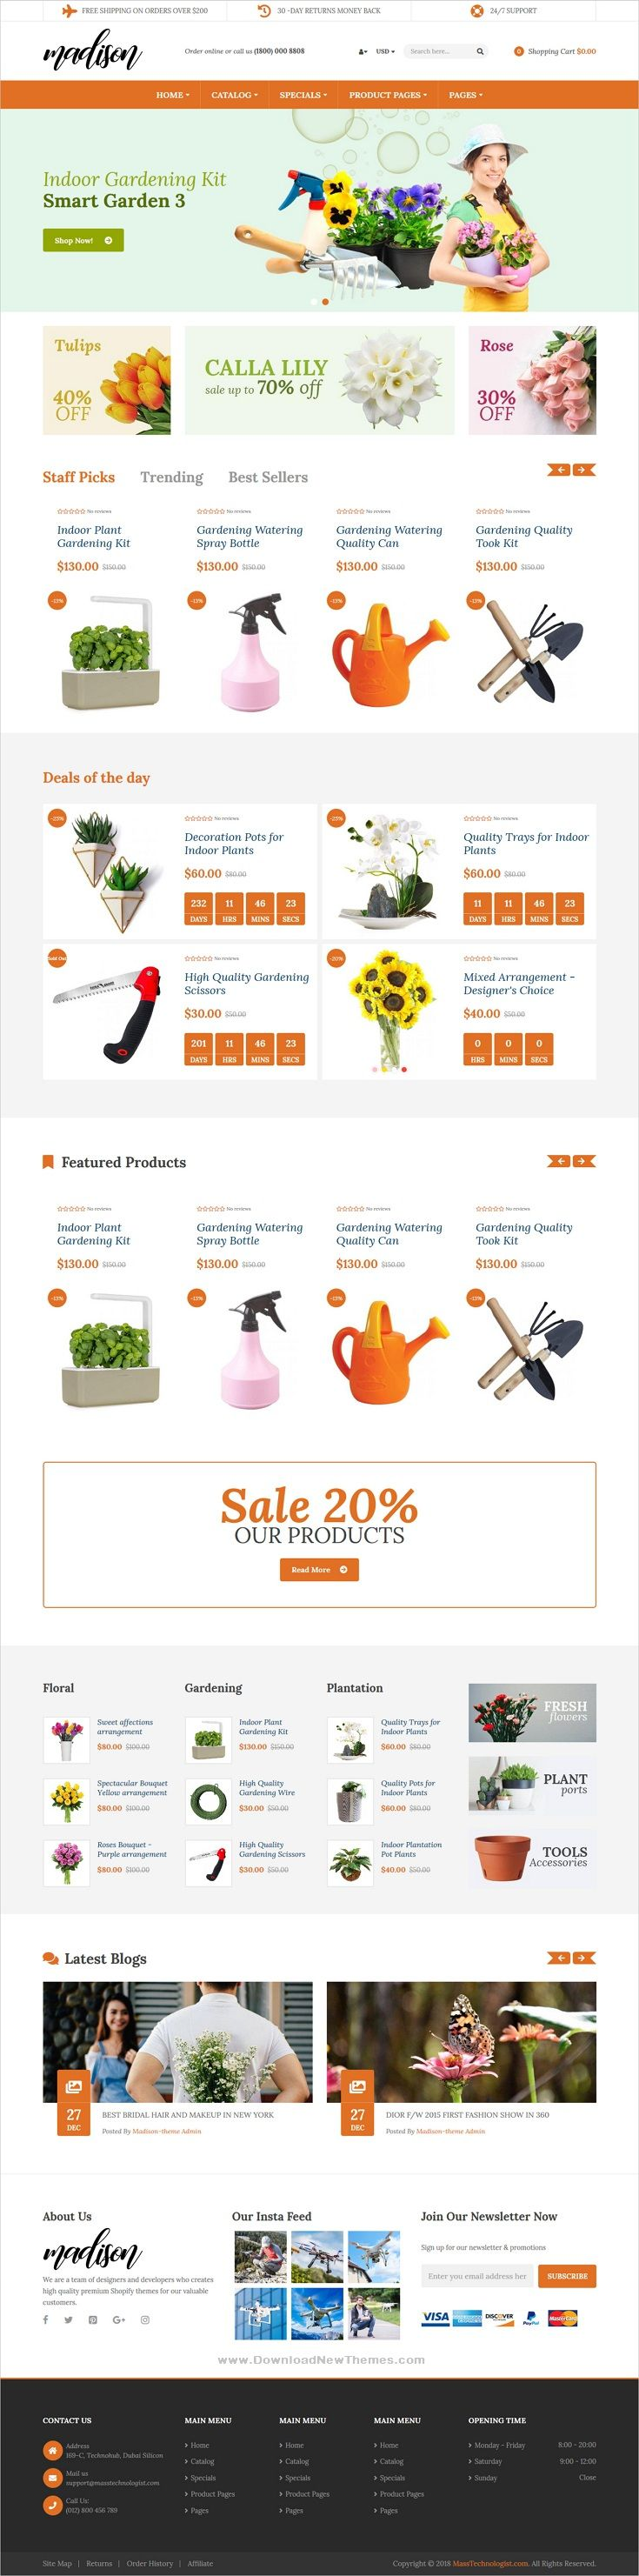 Madison Is A Clean And Modern Design 9in1 Responsive Shopify